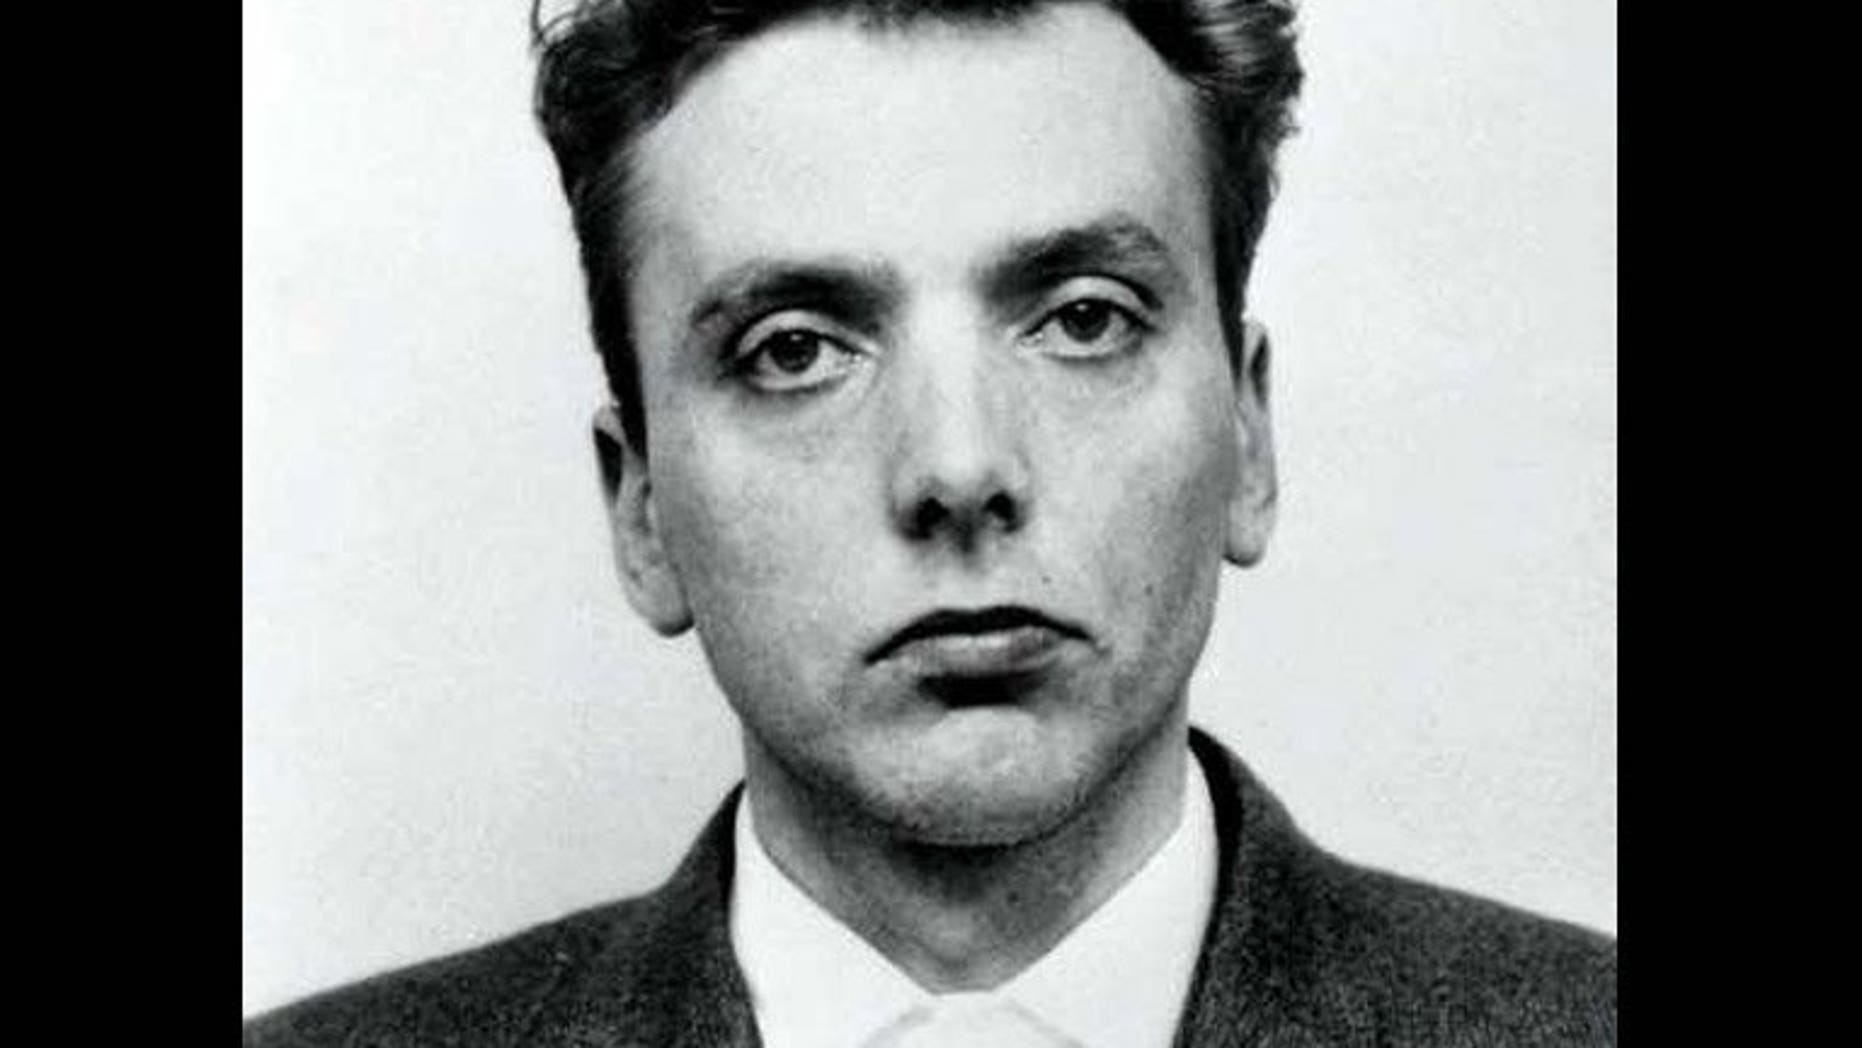 This undated police handout image shows Moors murderer Ian Brady. Brady is expected to speak in detail publicly for the first time since 1966 on Tuesday when he addresses a mental health tribunal as part of his attempt to be transferred to prison.